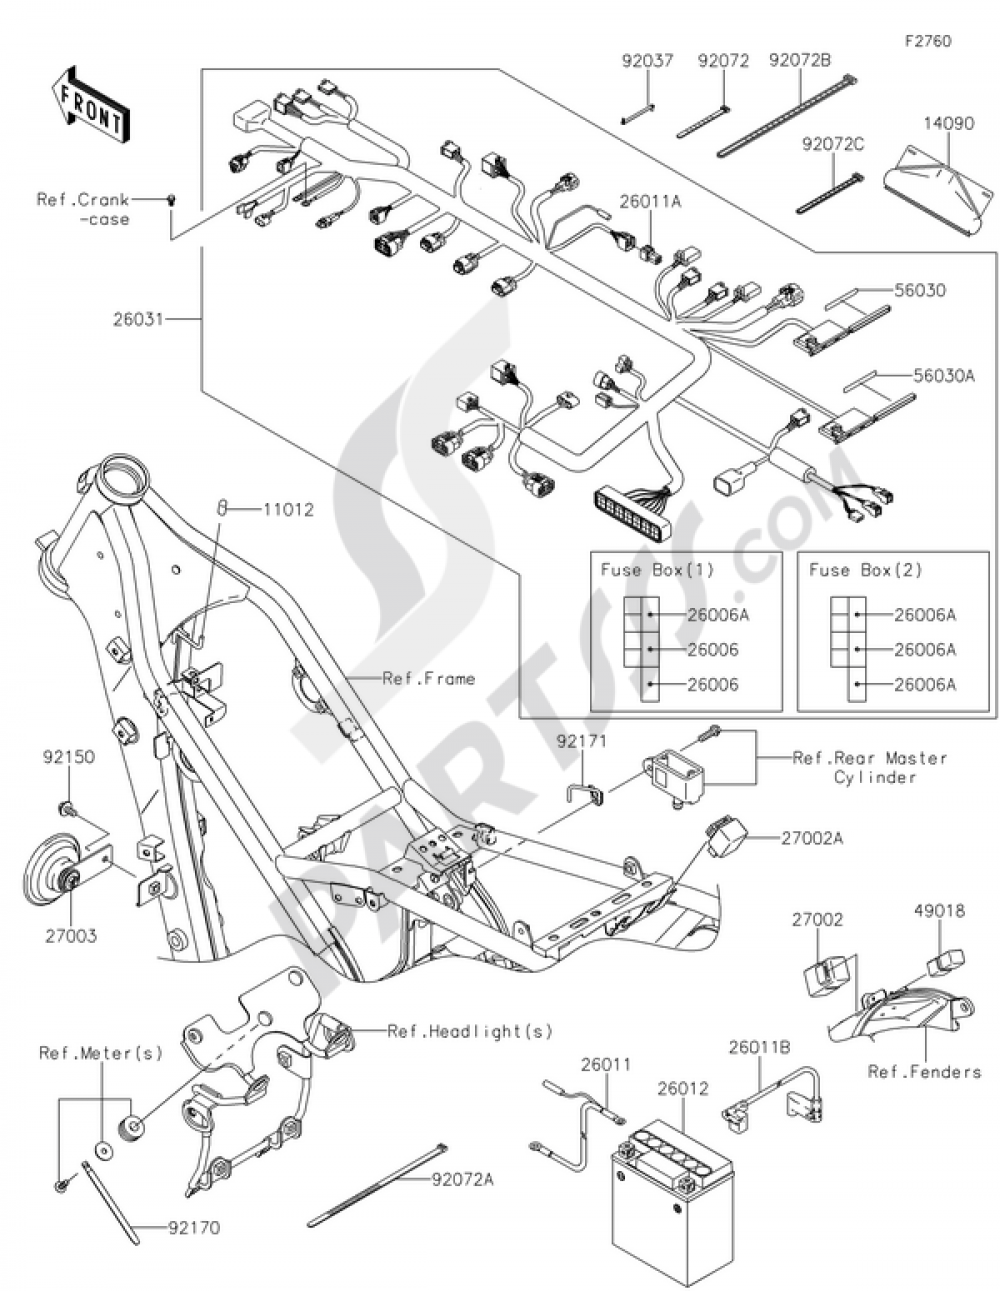 Chassis Electrical Equipment Kawasaki KLX250 2015